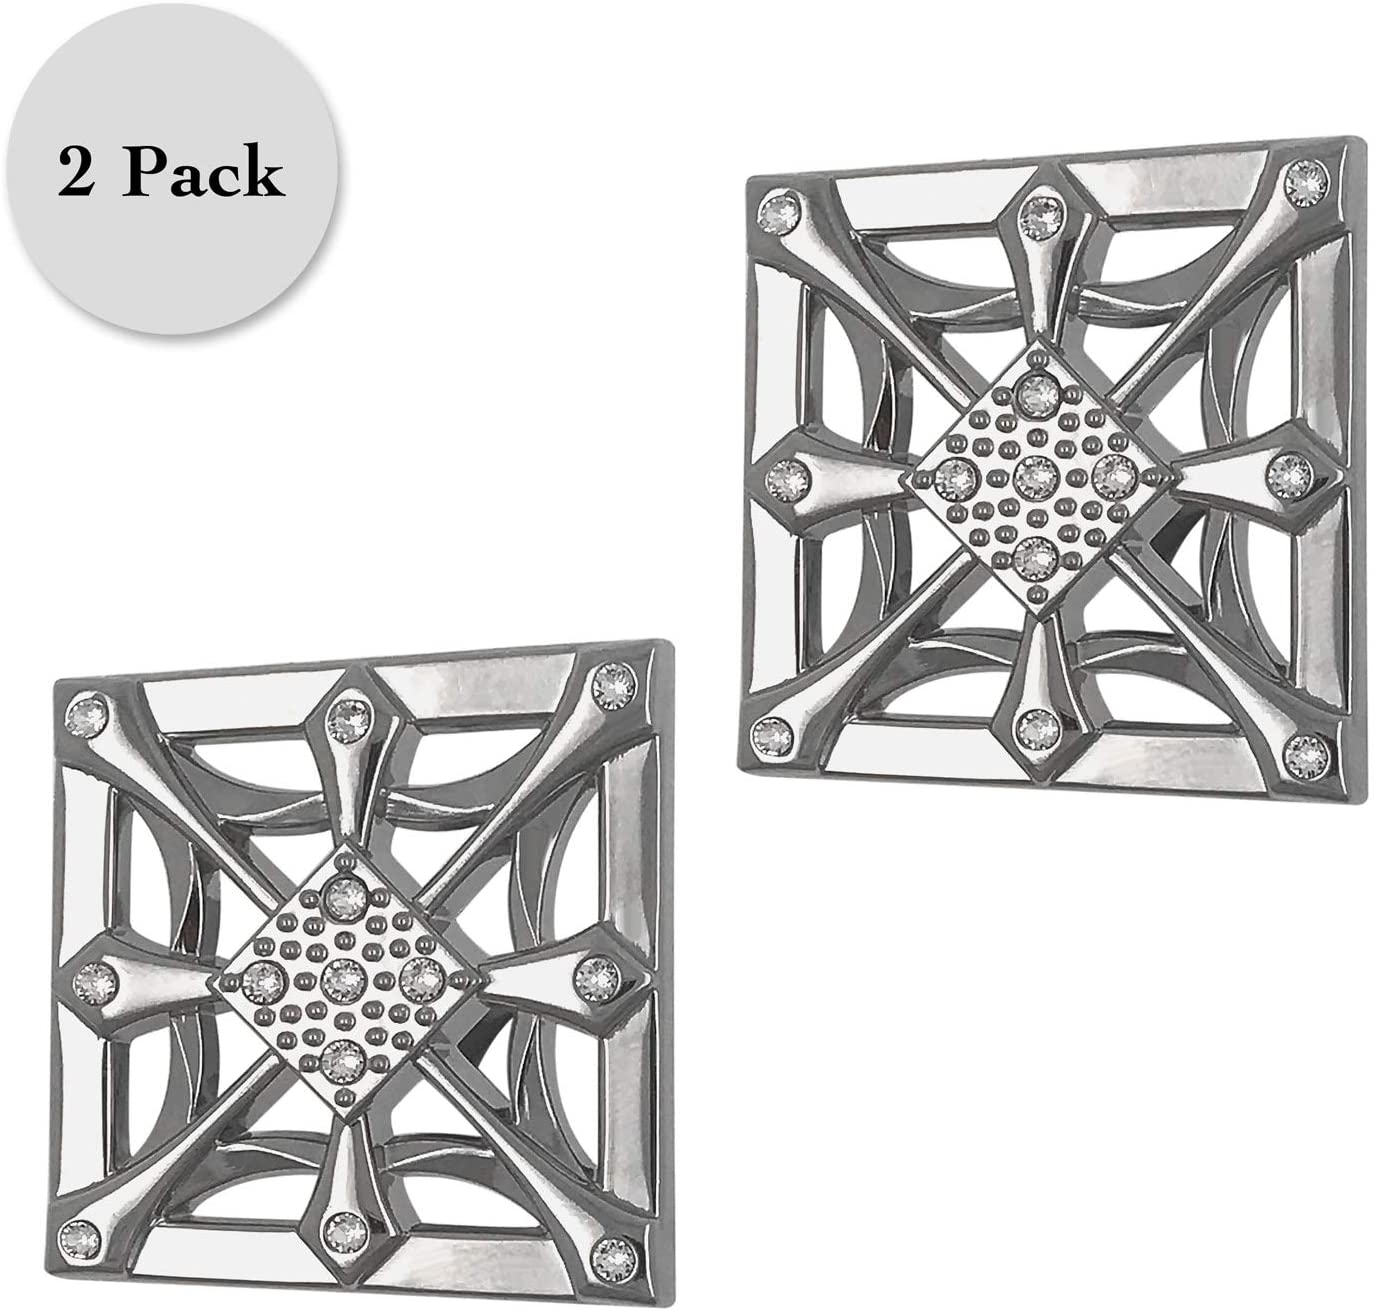 Regent Square Set of 2 Drawer Knobs- Square with Scrolls & Crystals from Swarovski- 2-Pack, Nickel Finish, Zinc Alloy, Cabinet Hardware